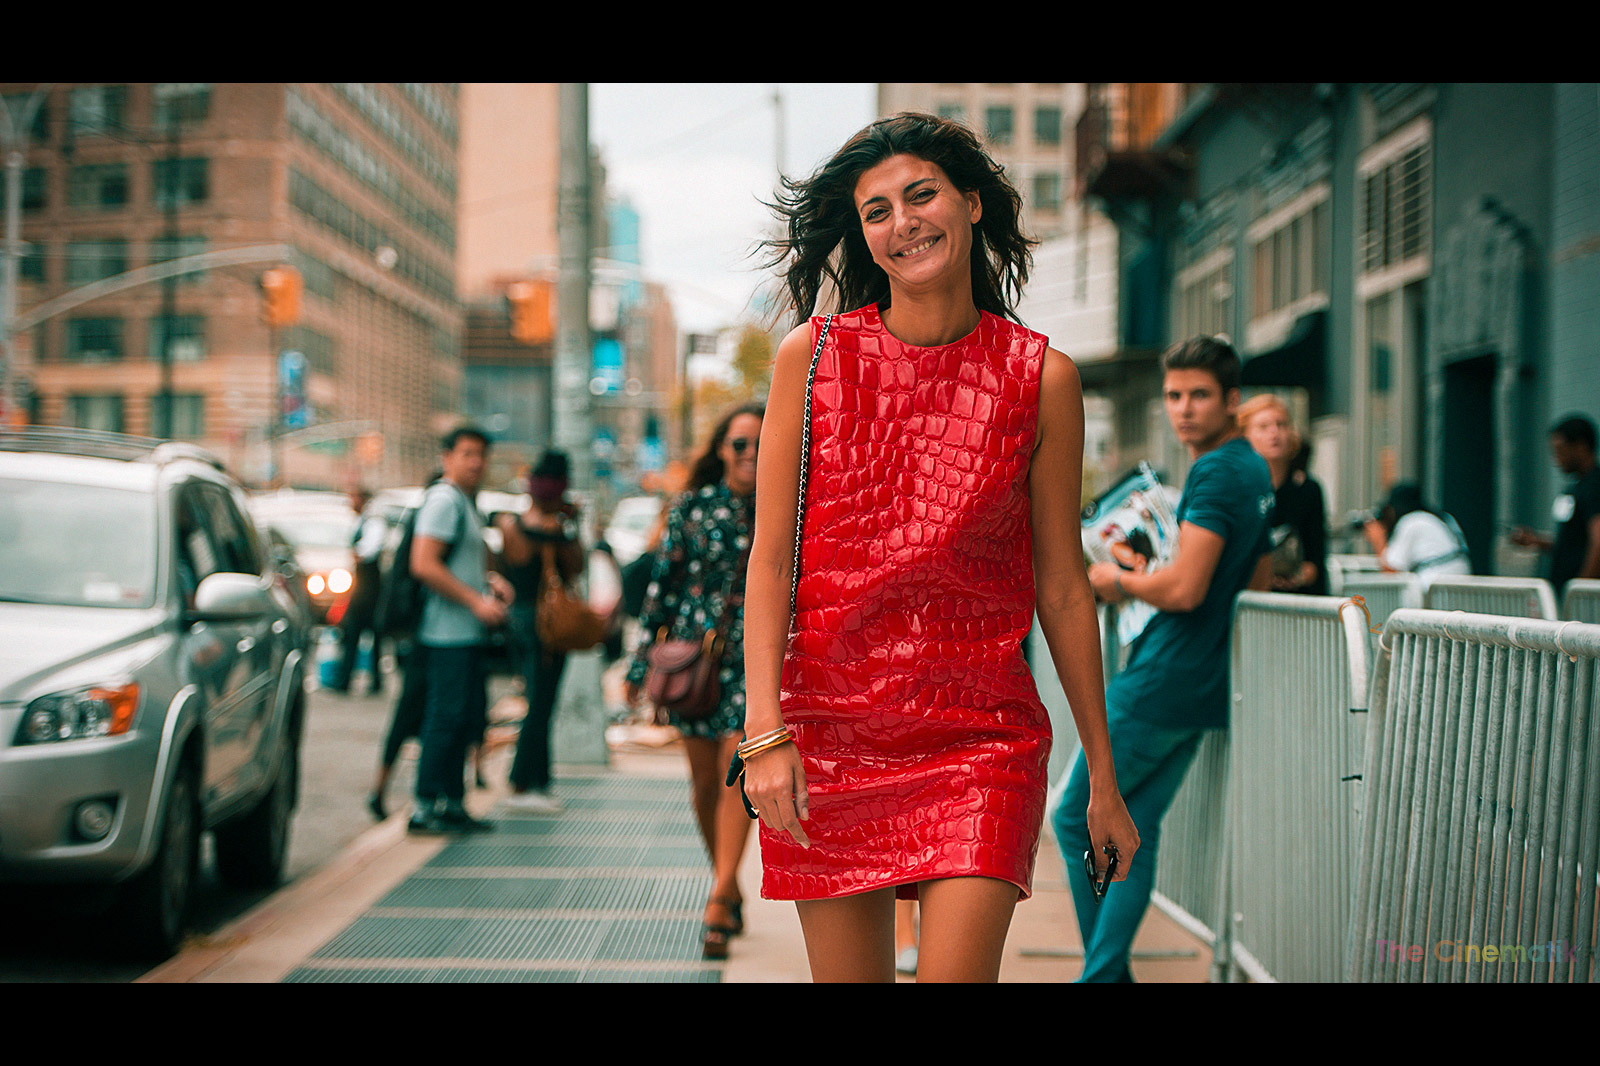 Giovanna Battaglia in leather croco red dress laughing with me at New York Fashion Week cinematic photograph by Kamal Lahmadi/THE CINEMATIK